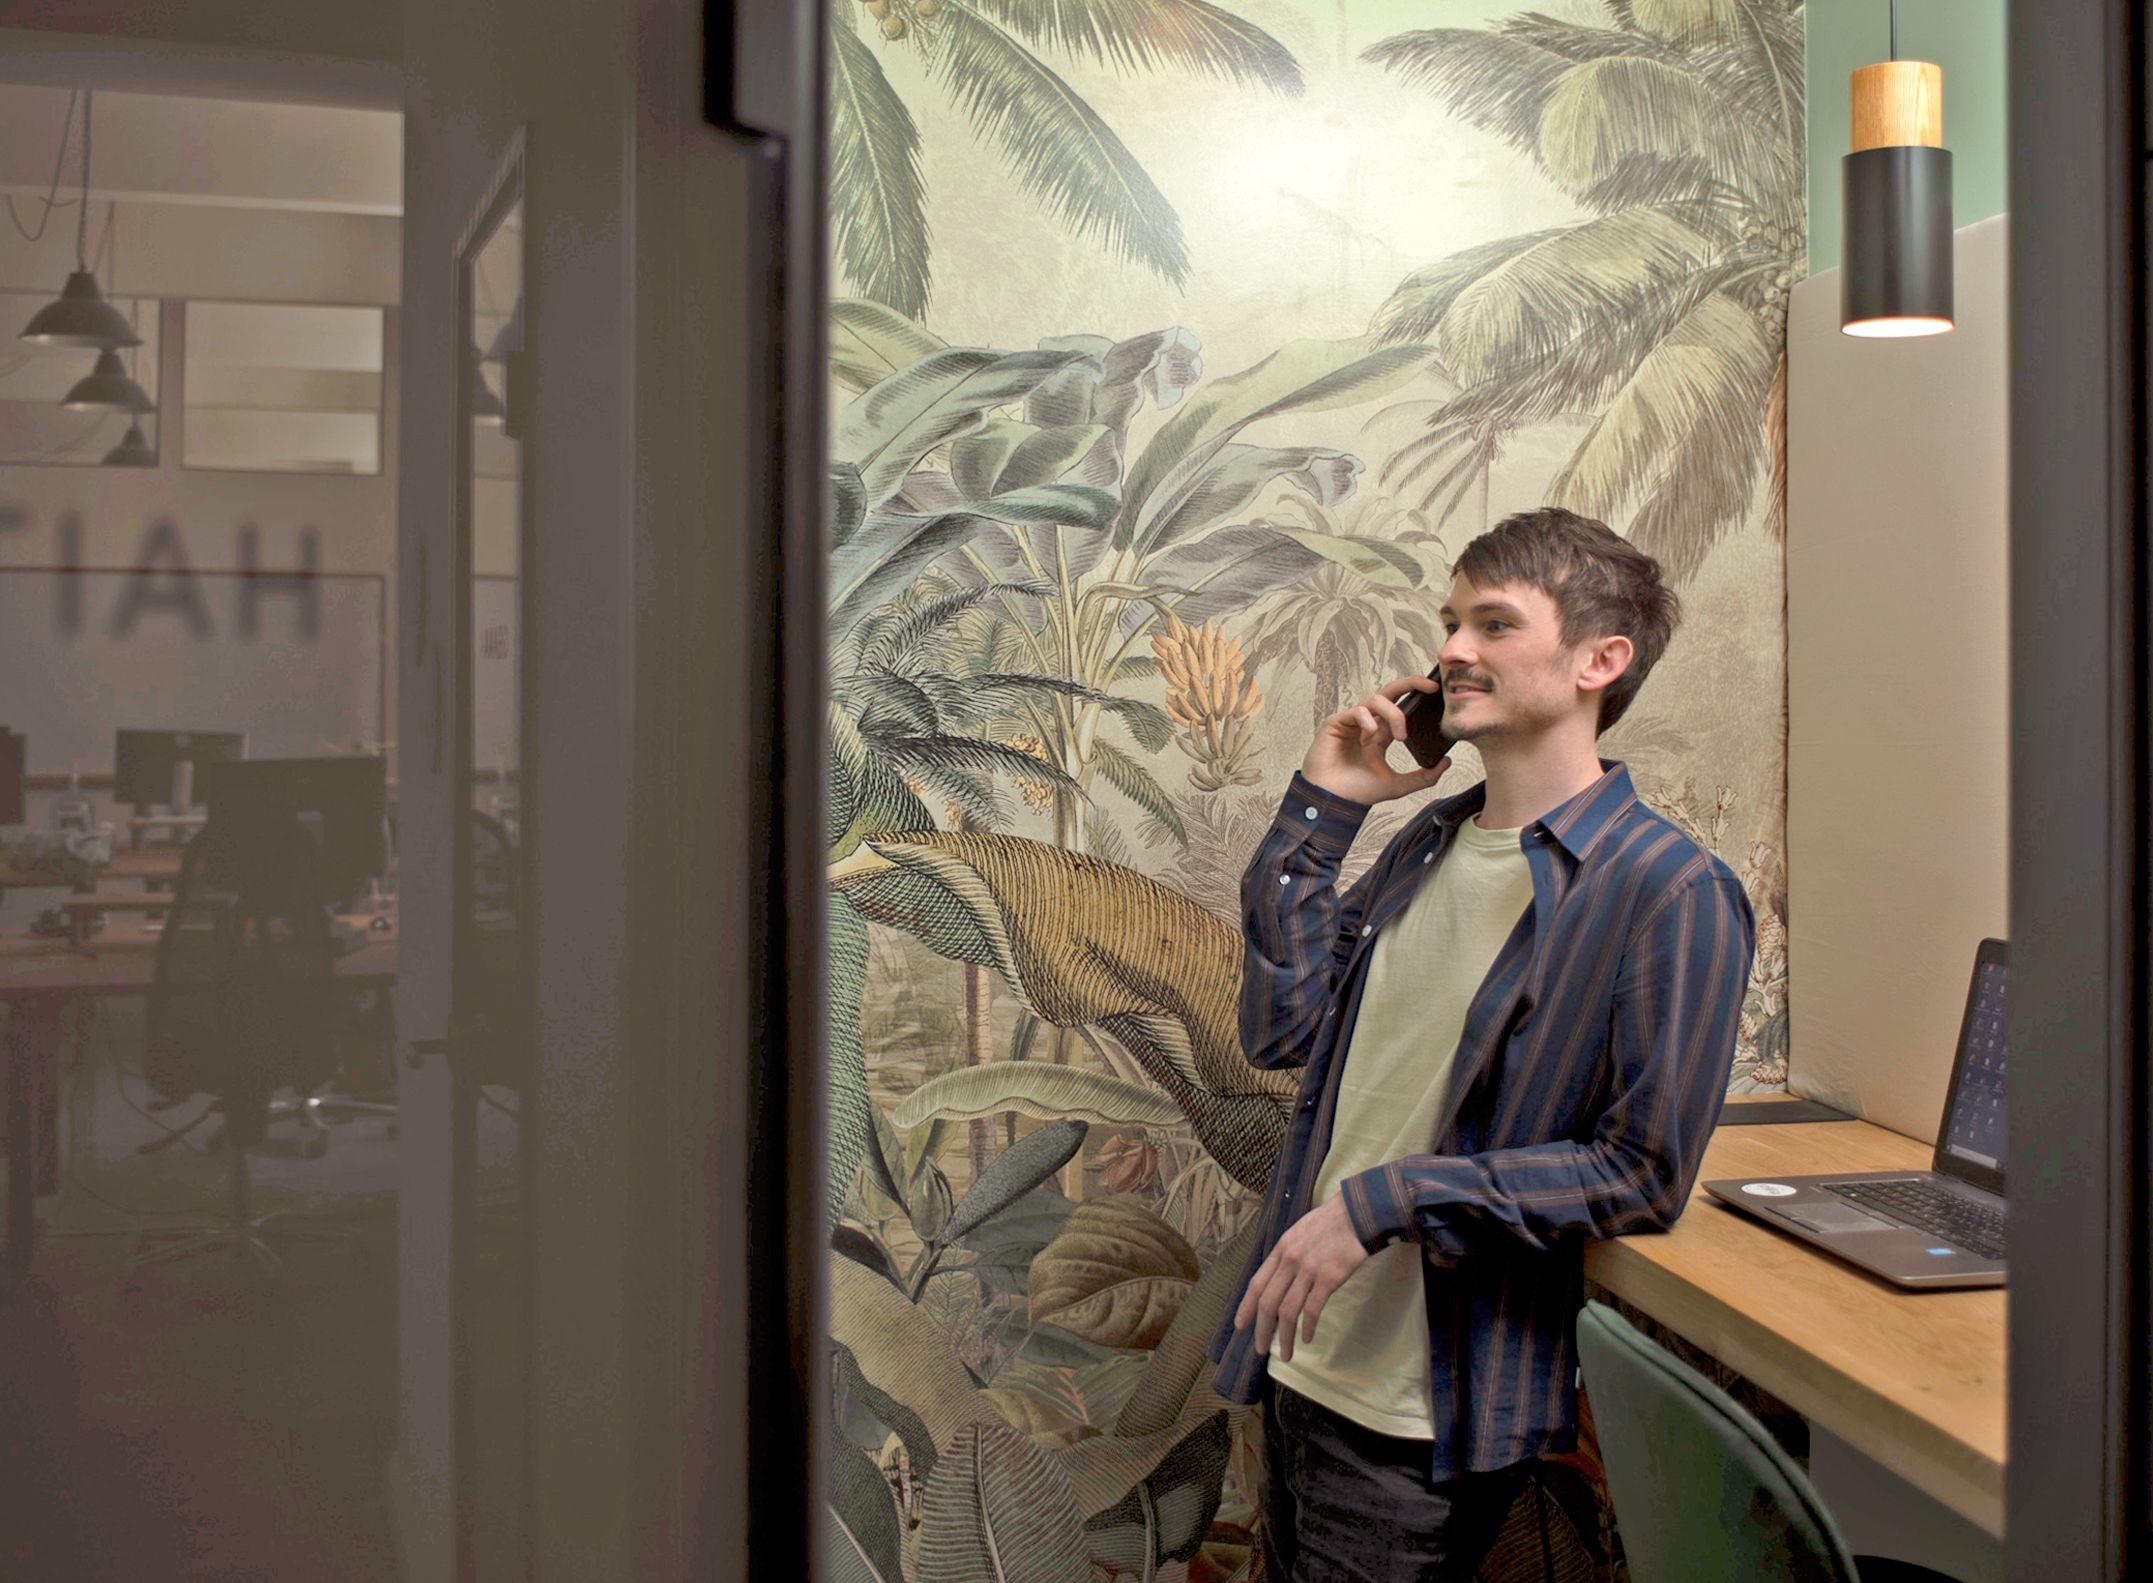 A colleague makes a call in a beautifully designed telephone booth